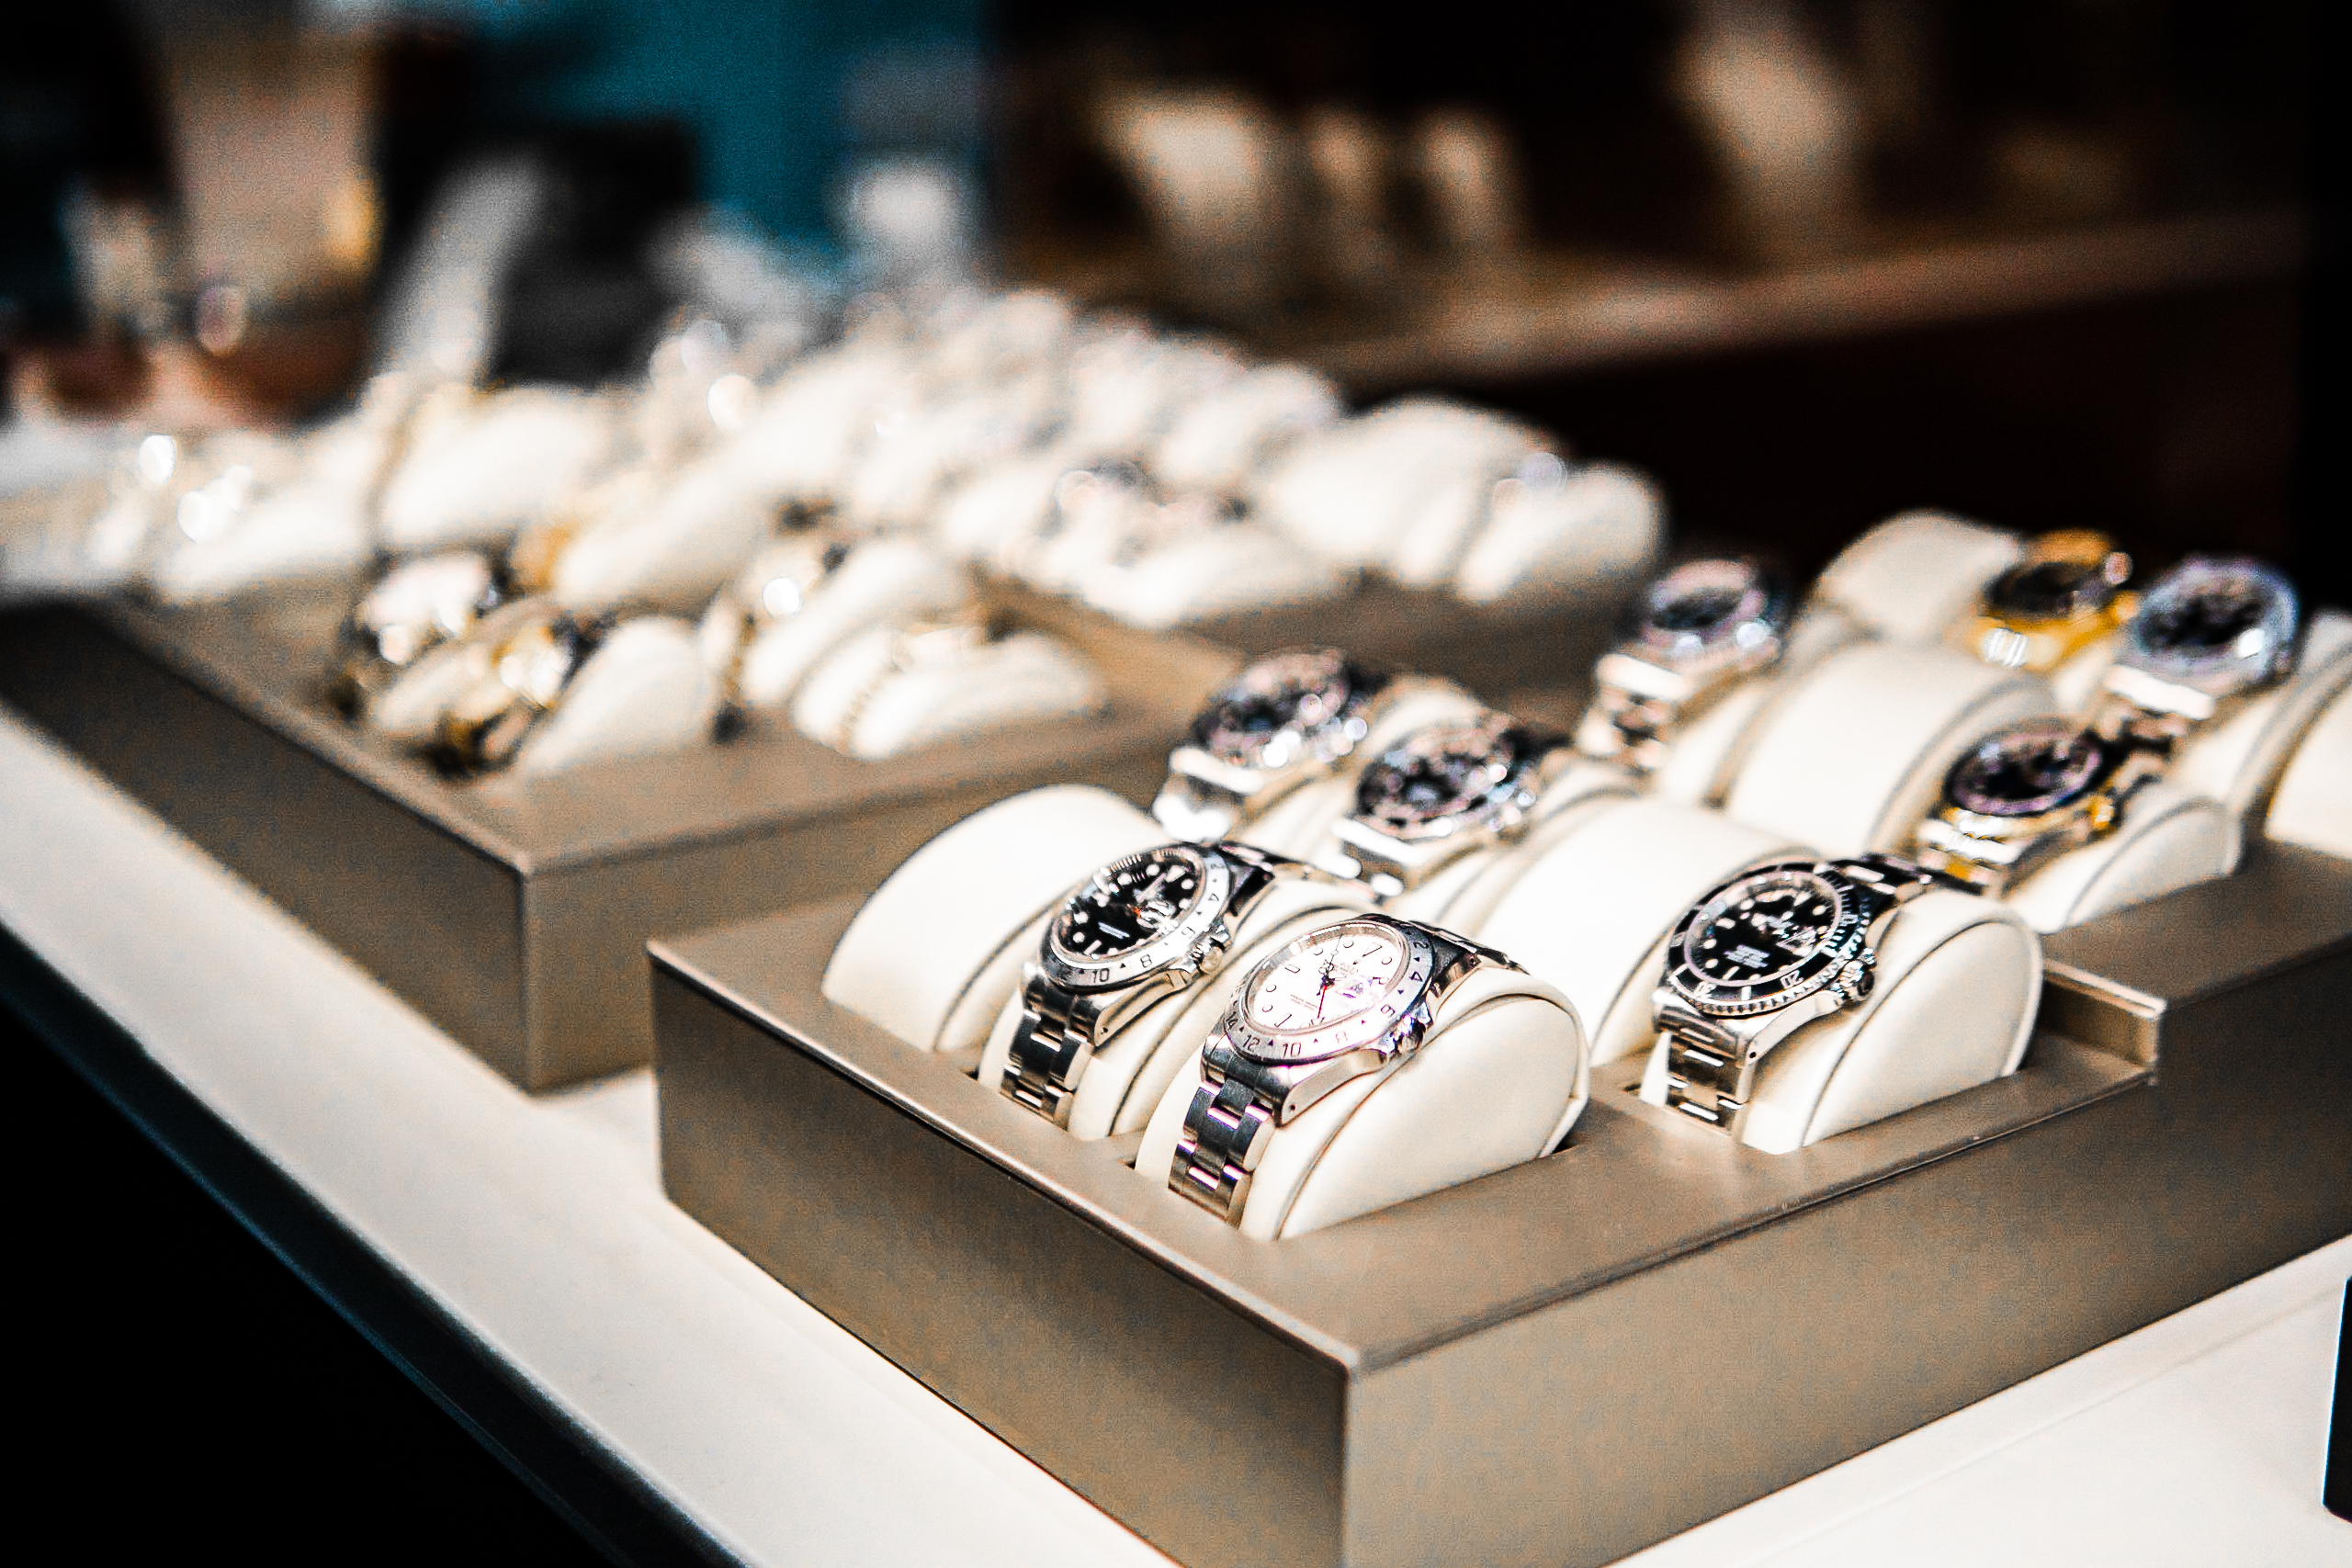 Up close photo of many luxury watches in store case